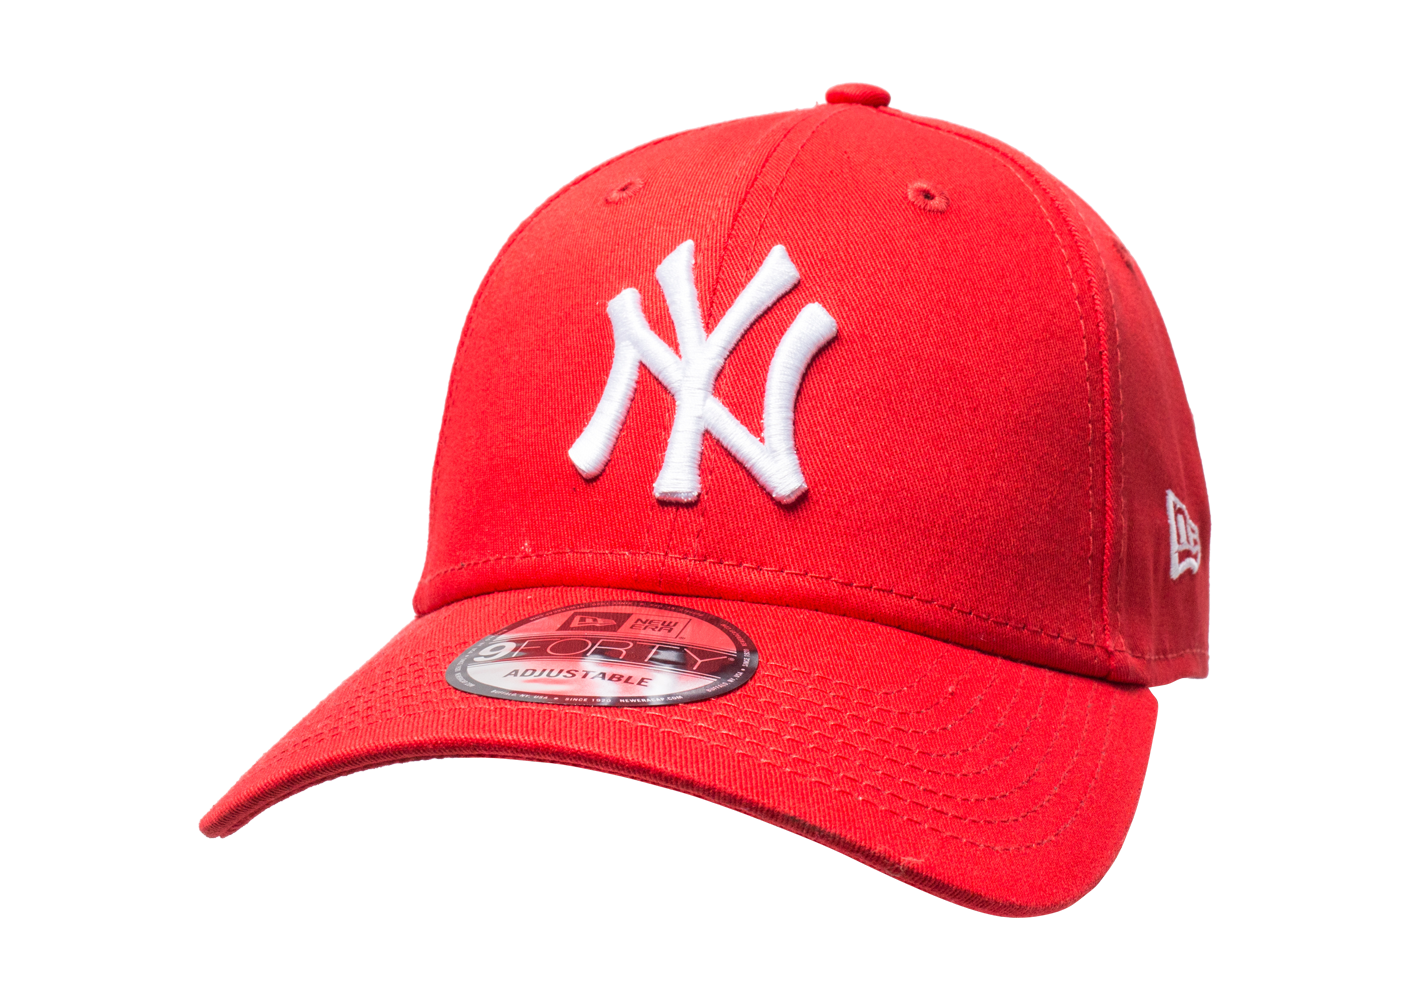 New Era Homme Casquette 9/40 Rouge Ny